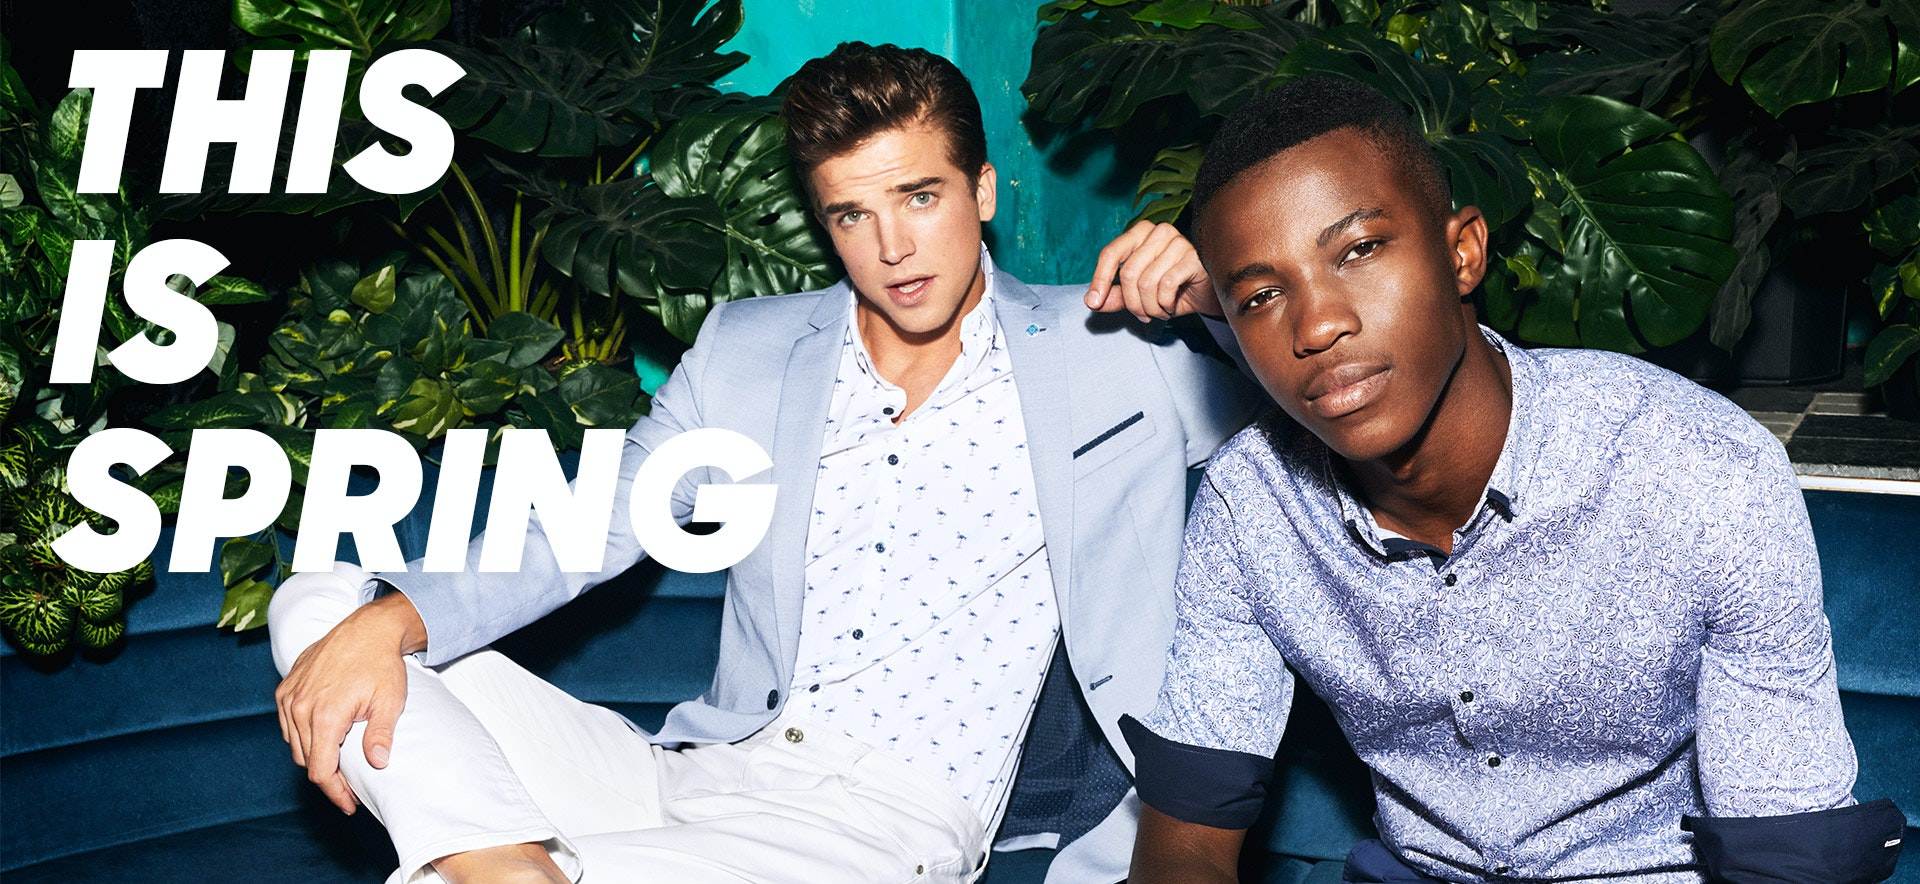 This is Spring: the yd. latest mens clothing collection campaign